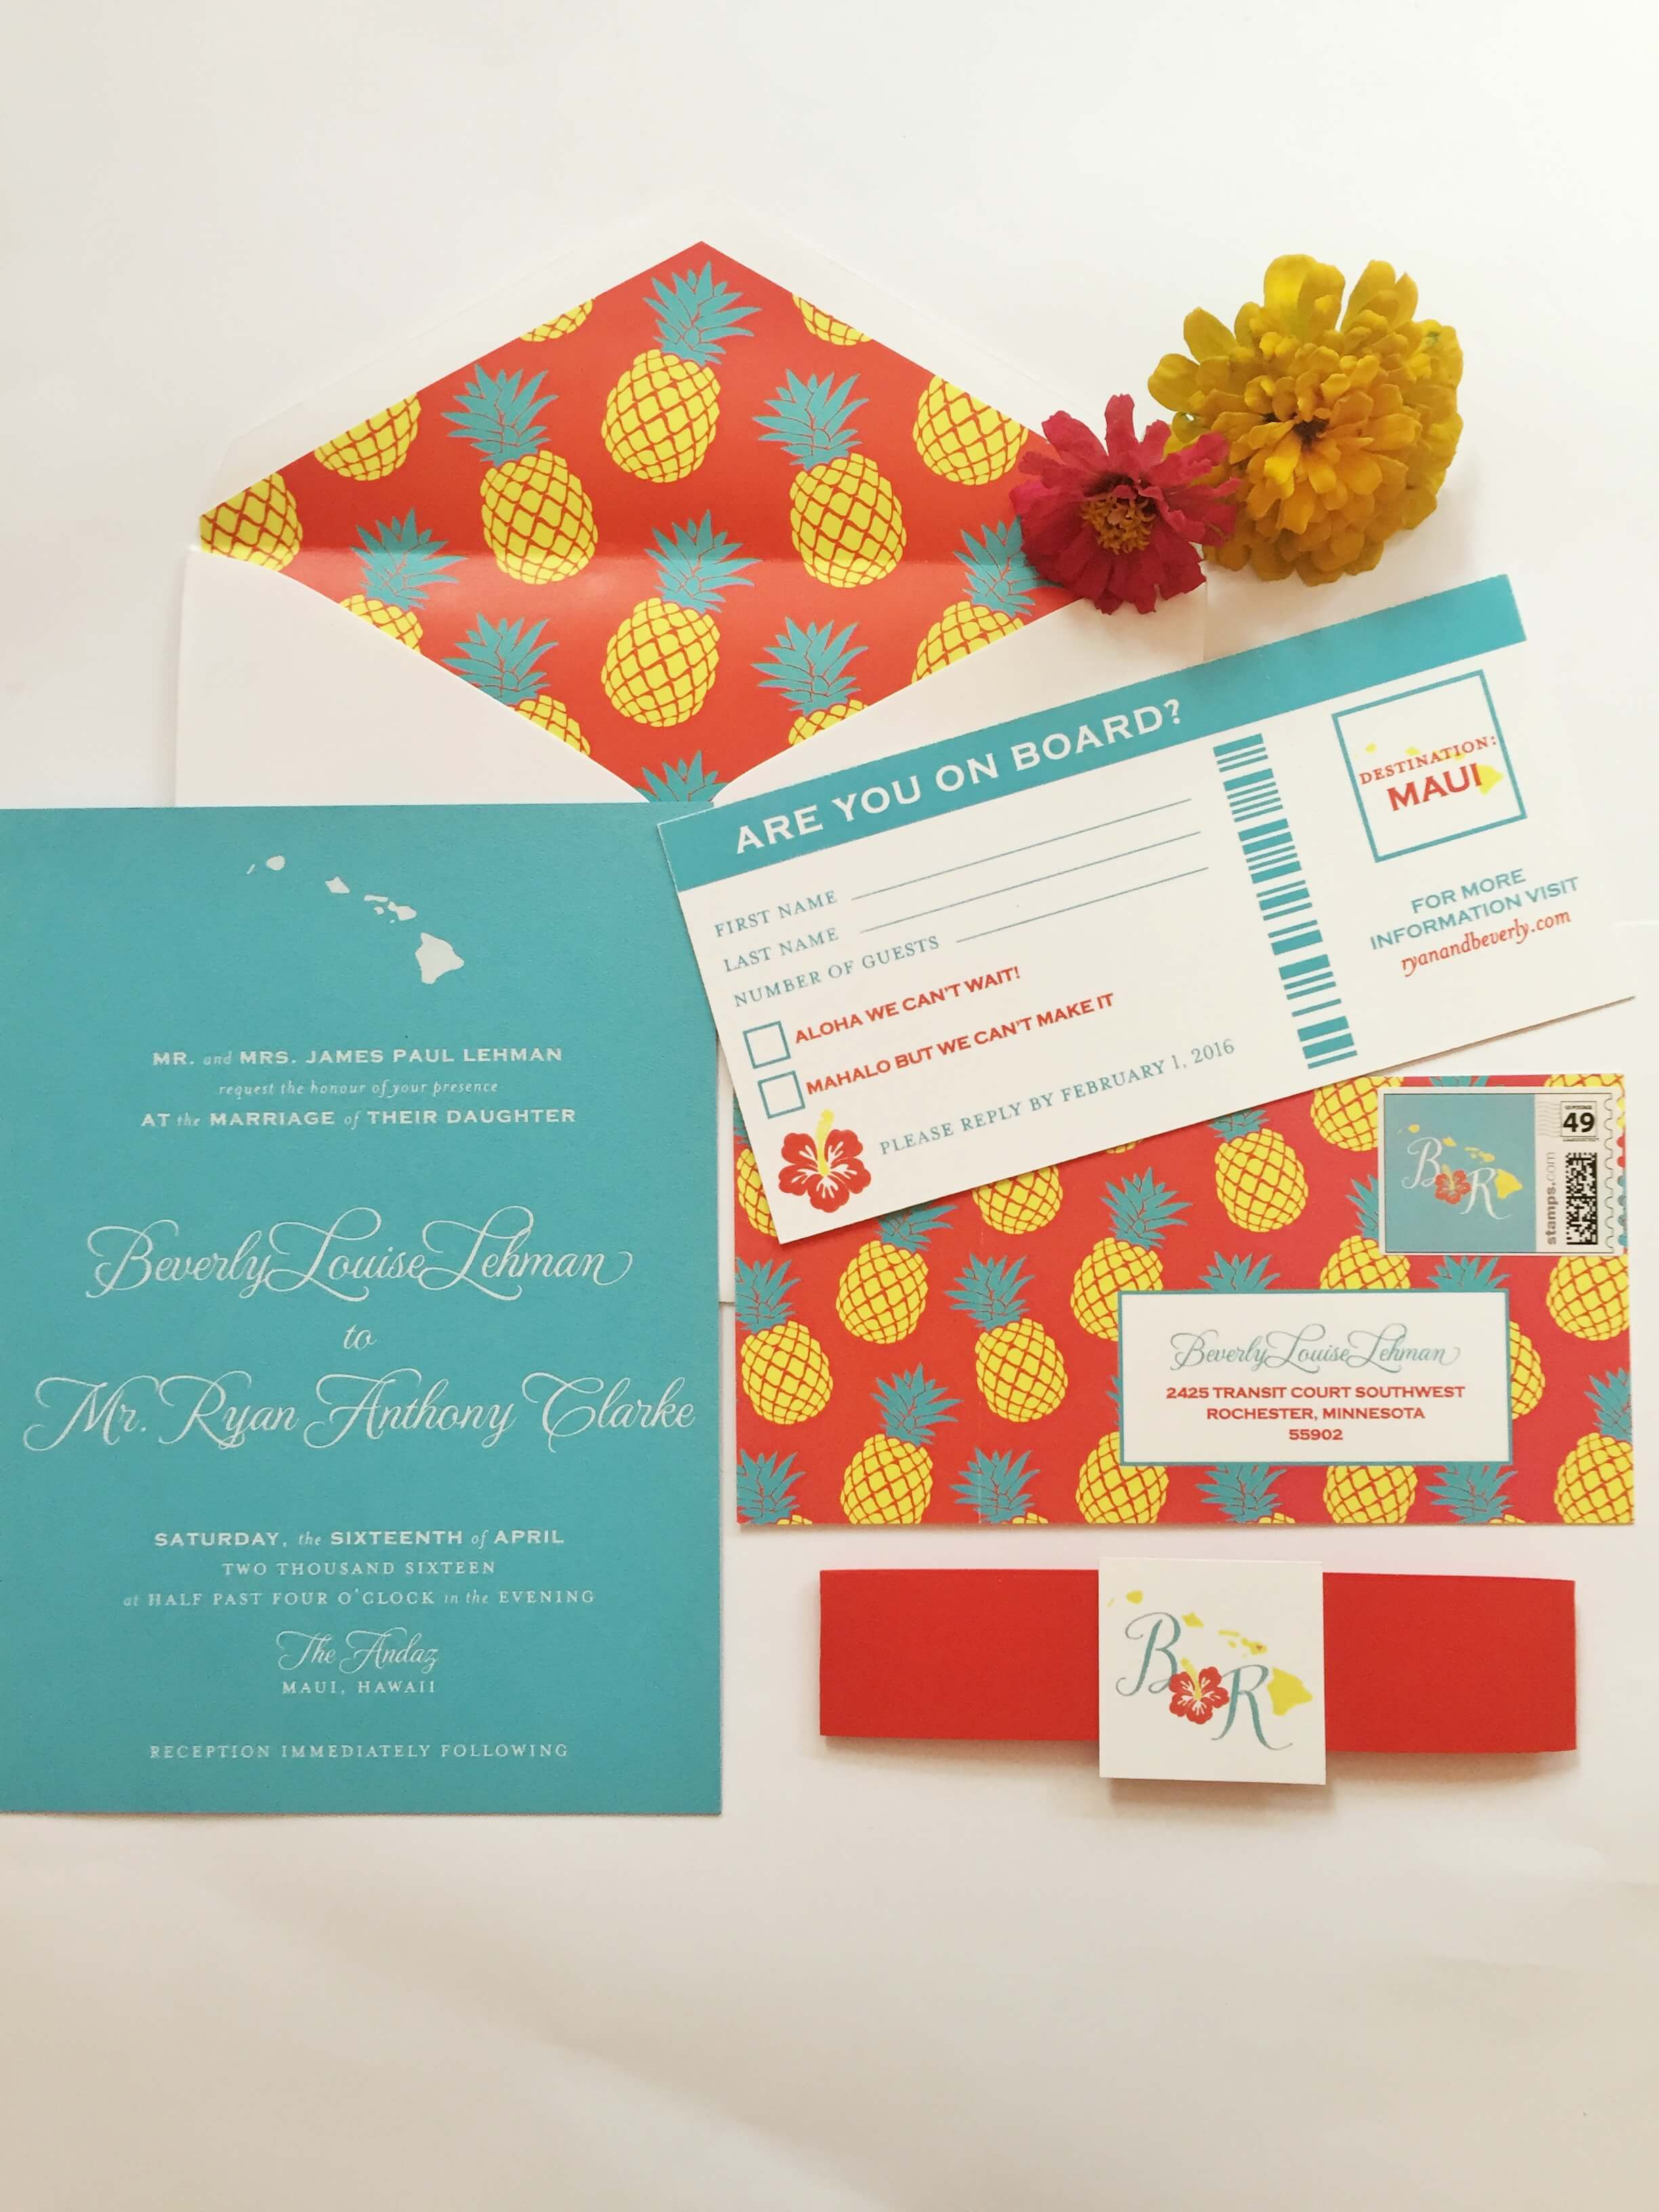 turquoise hawaii wedding invitations with pineapple pattern and boarding pass